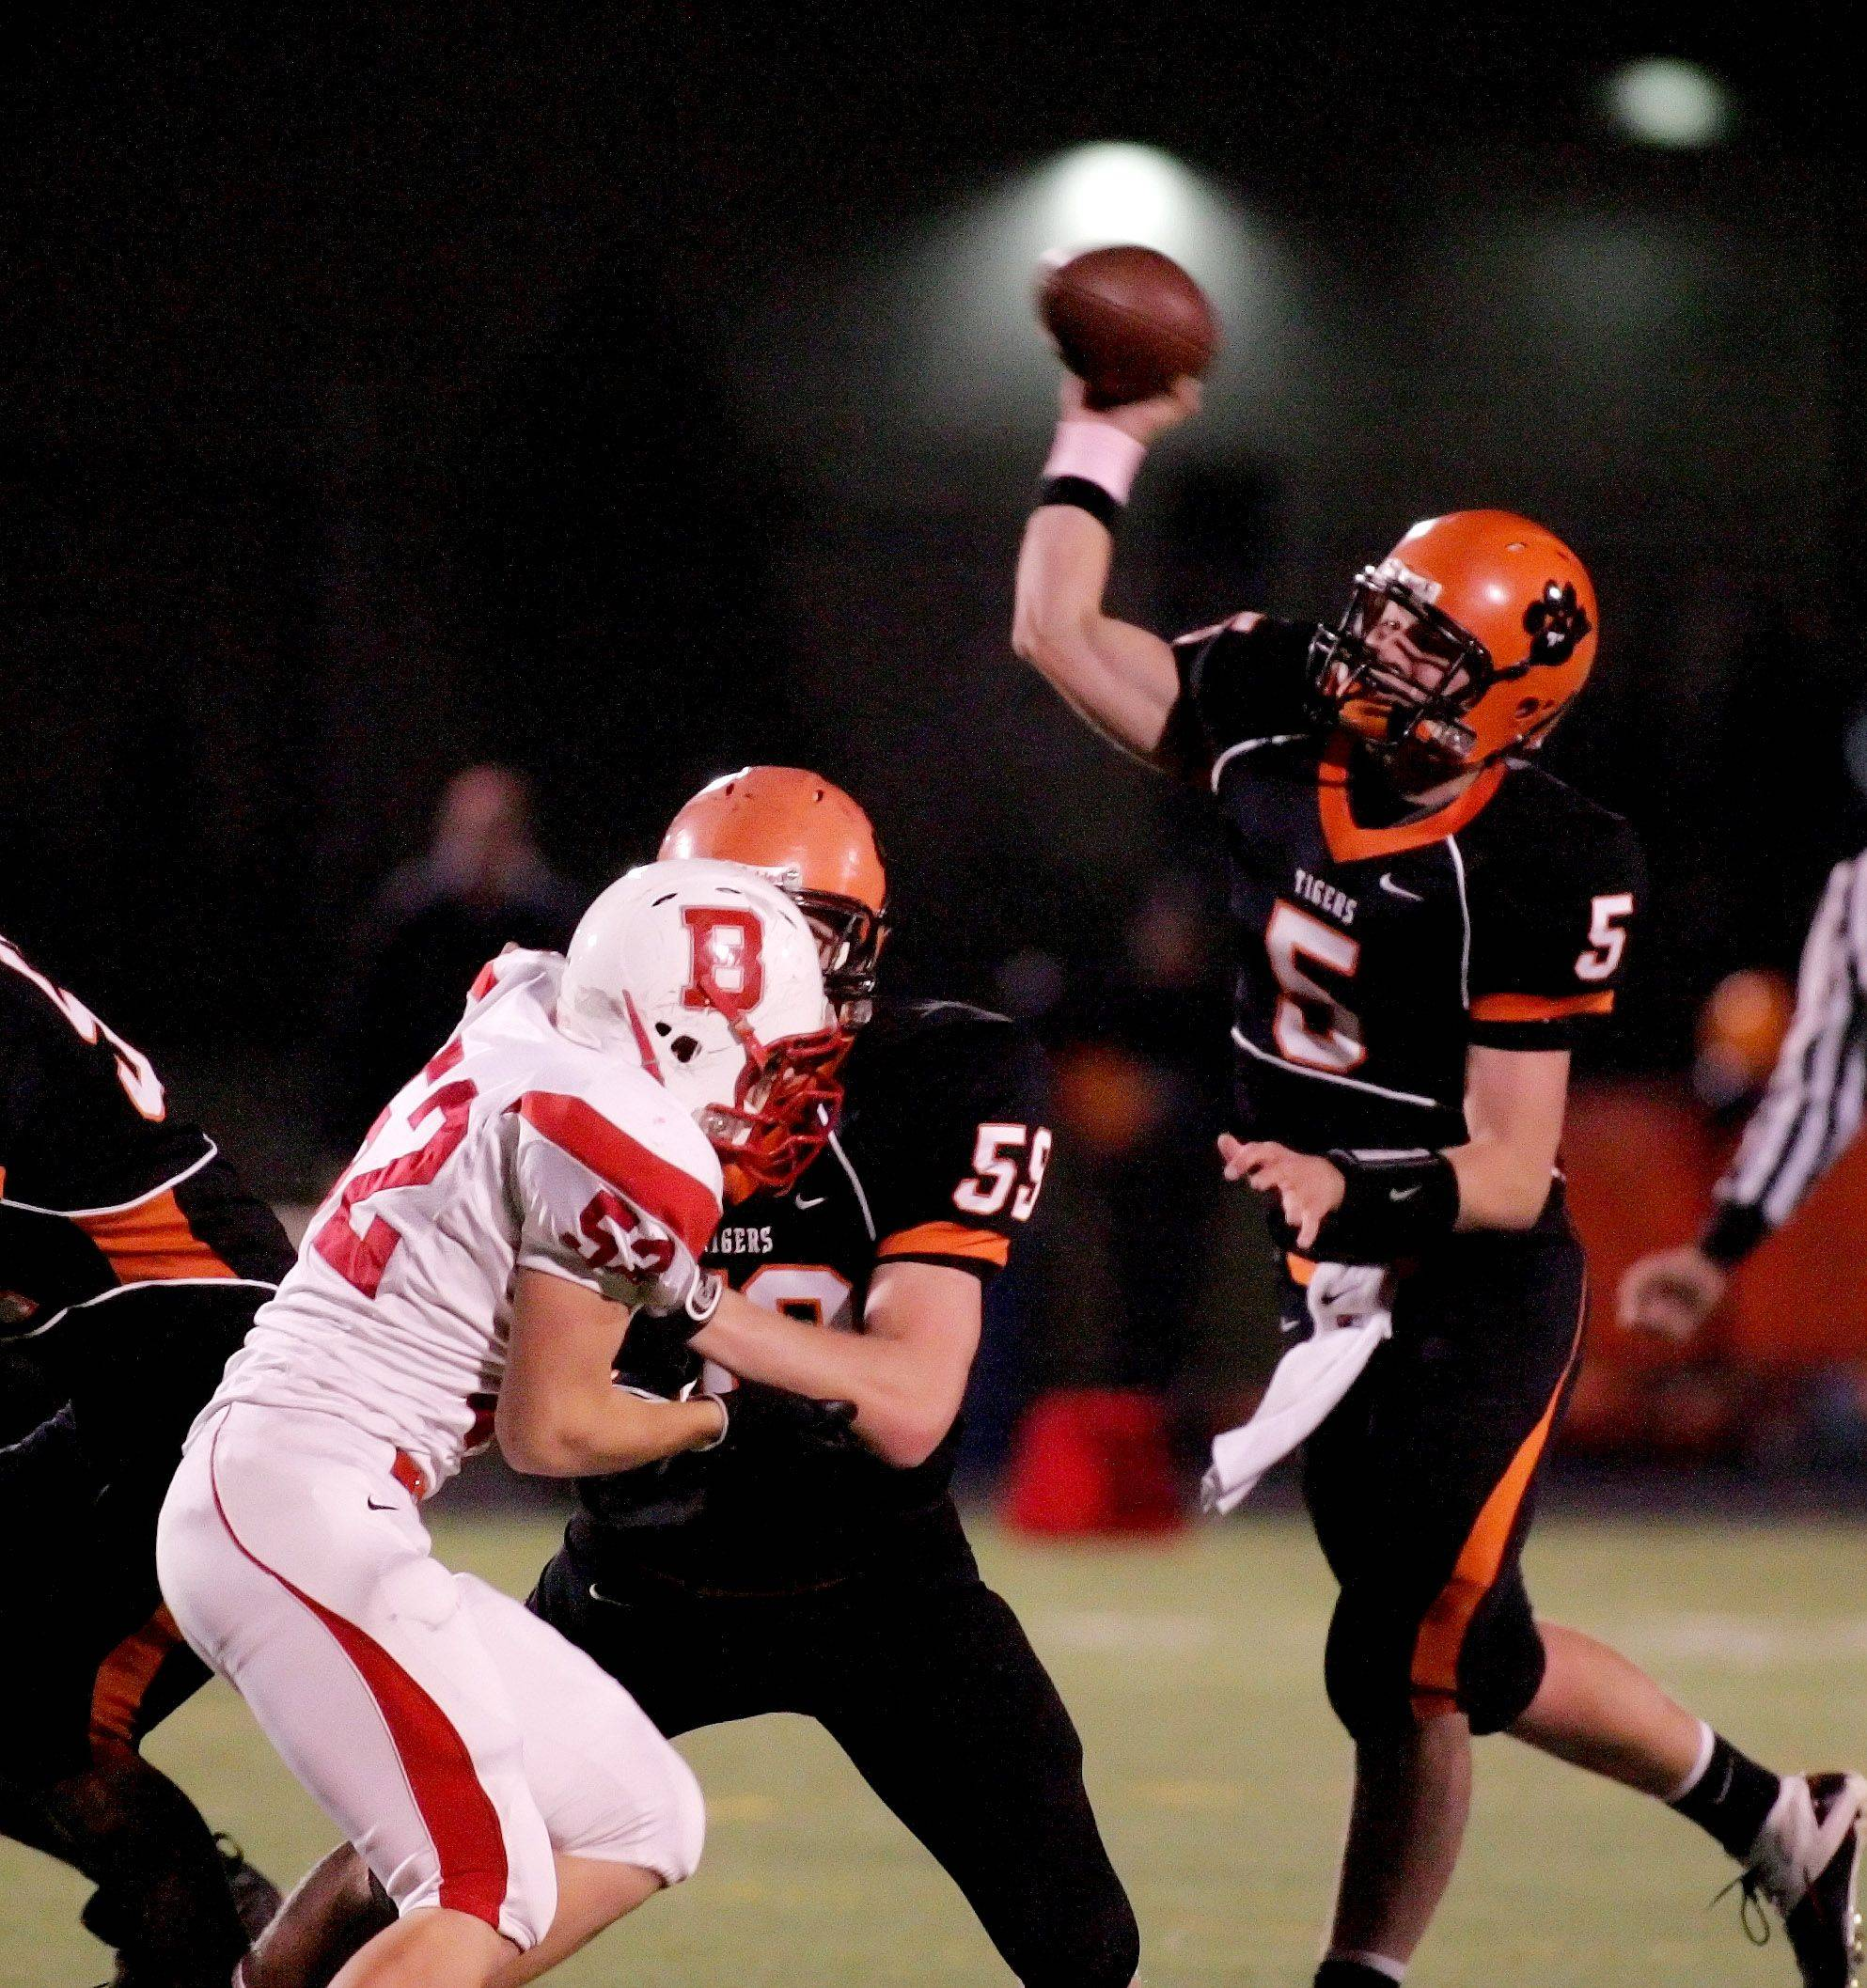 Wheaton Warrenville South quarterback Reilly O'Toole makes a pass against Benet during playoff football Friday in Wheaton.